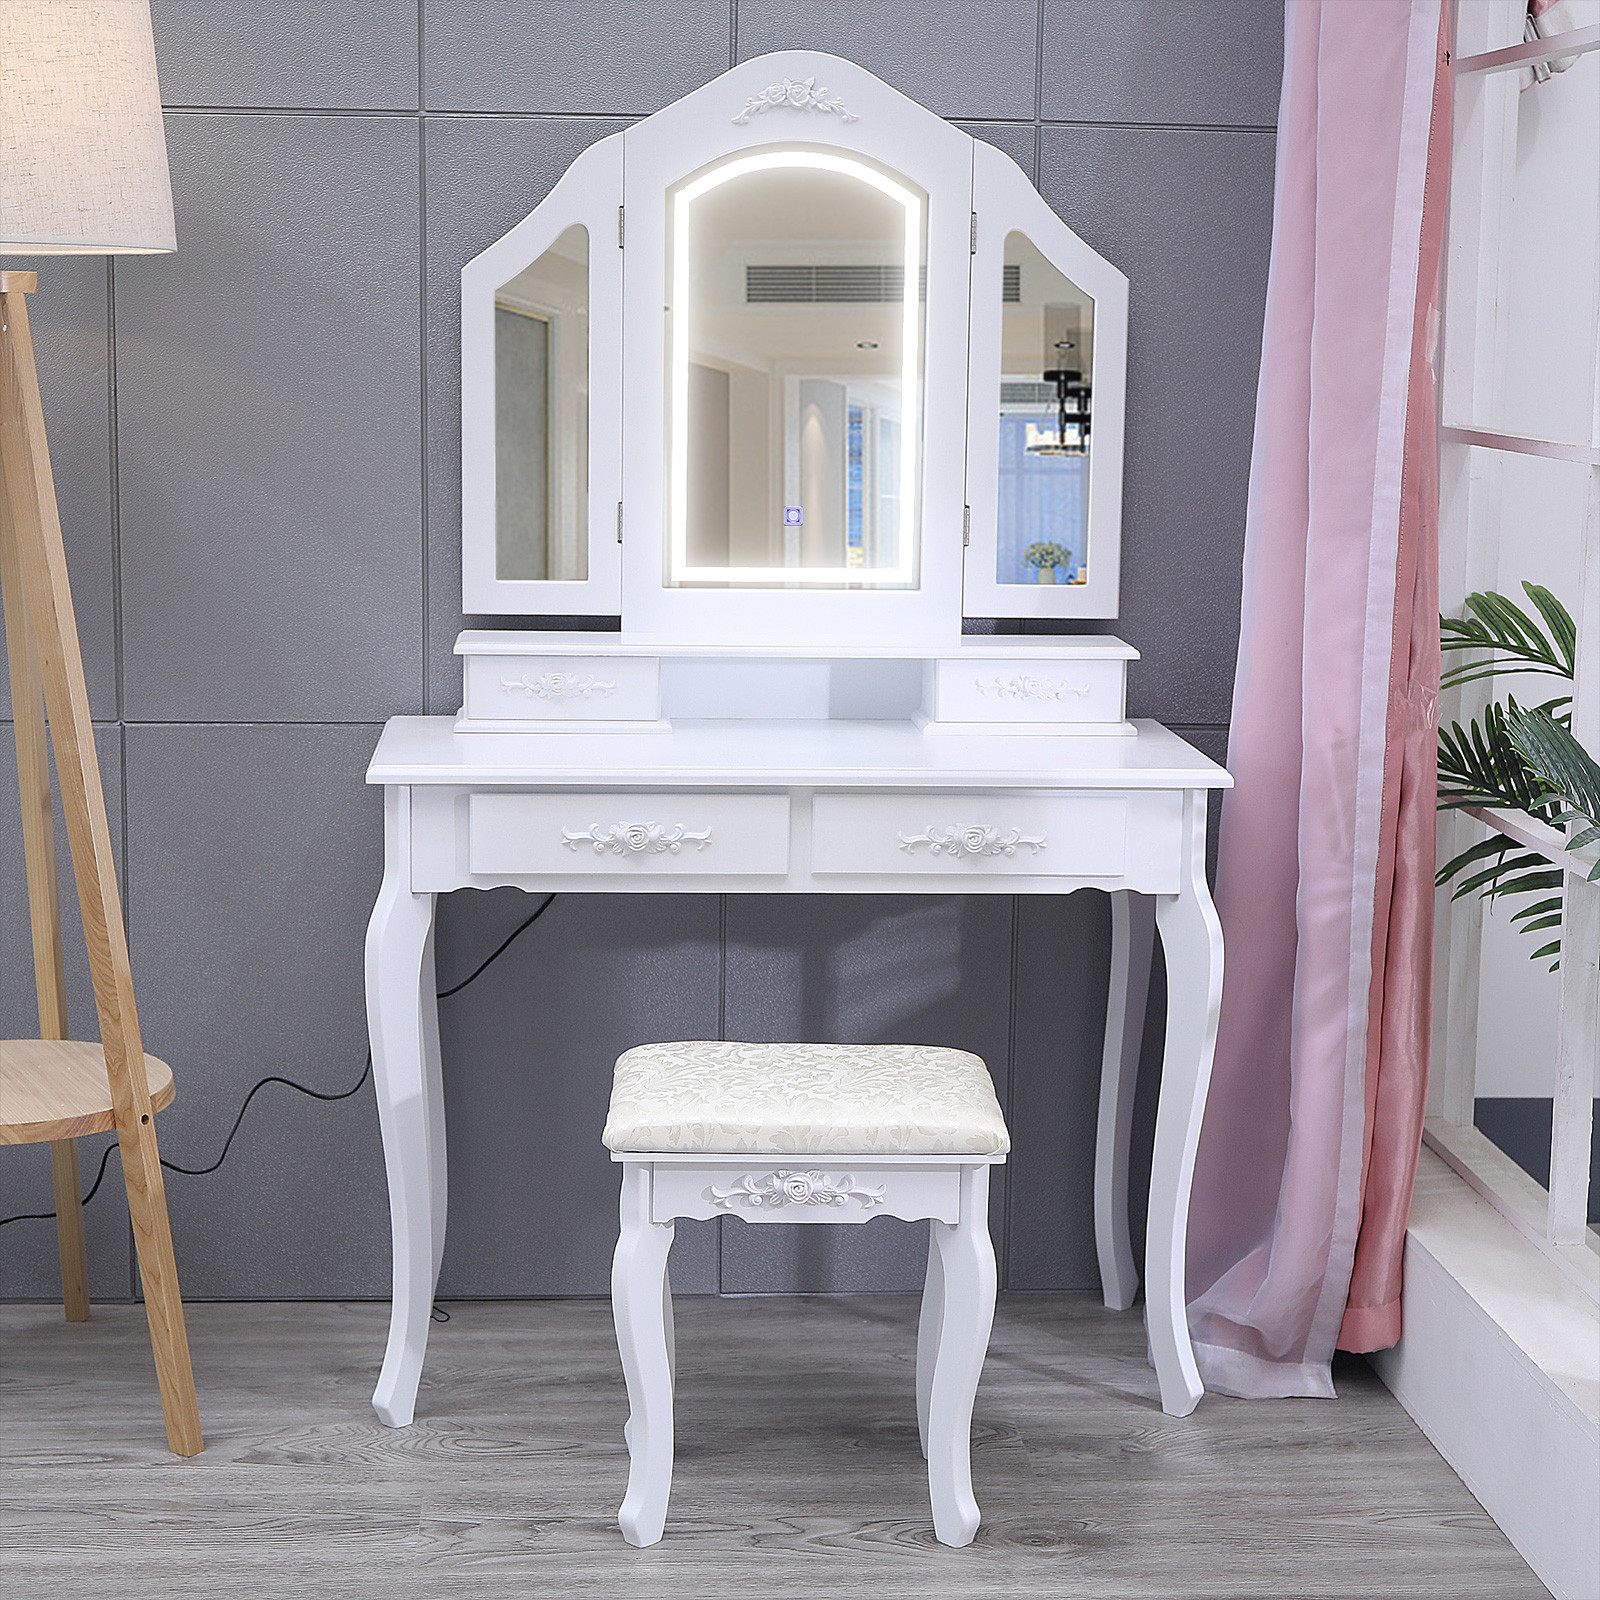 Vanity Beauty Station Makeup Table And Wooden Stool 3 Mirrors With LED Lights